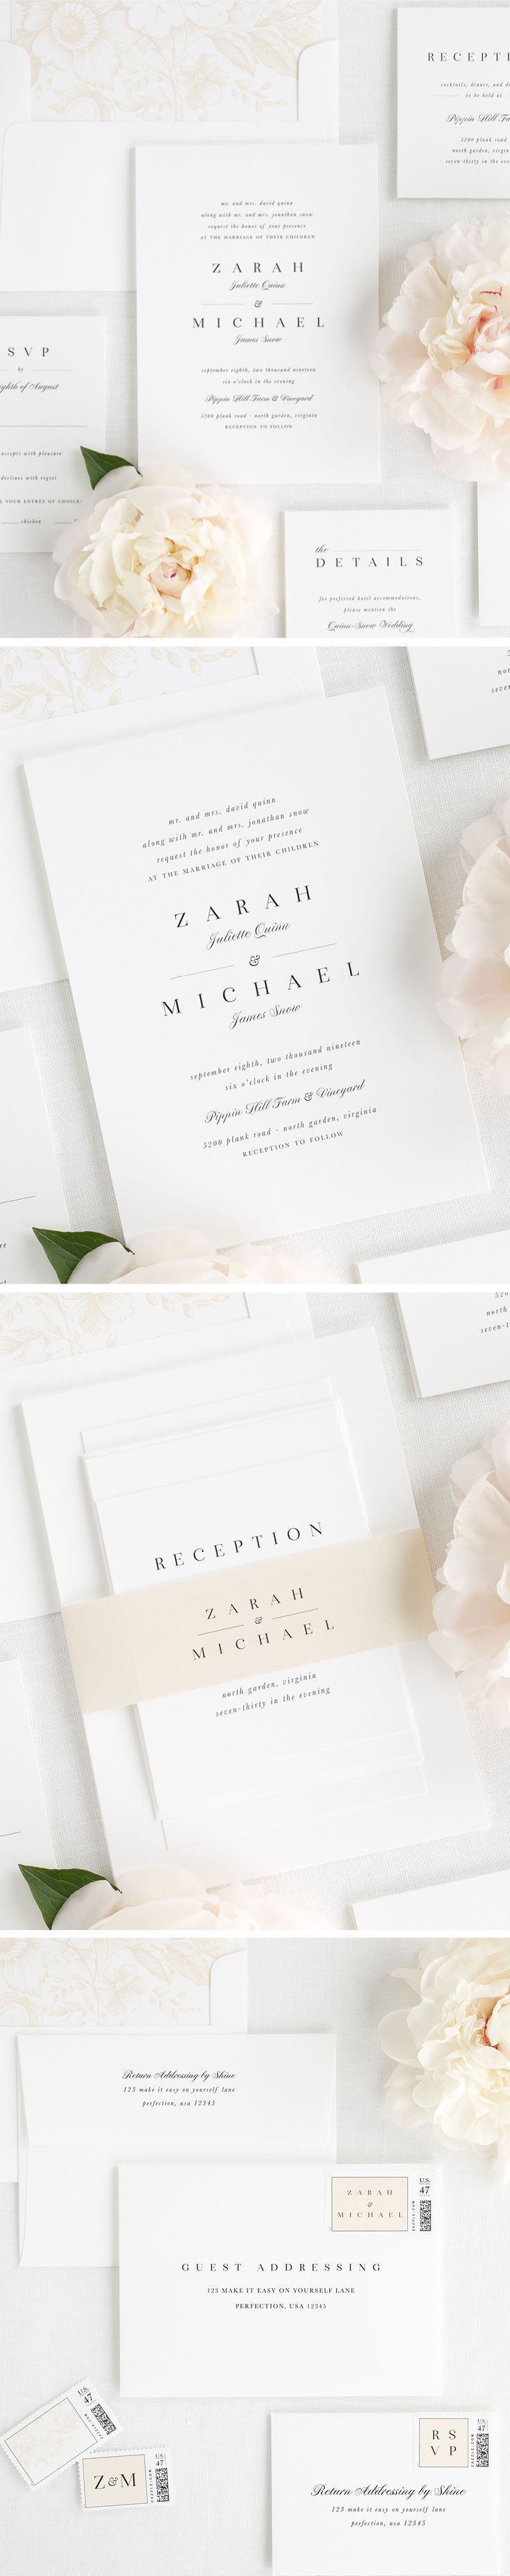 We are all about details! This beautiful suite checks off all the requirements of a classic and timeless design. We love the large sophisticated first names paired with a romantic script for middle and last names - you get the best of both worlds!